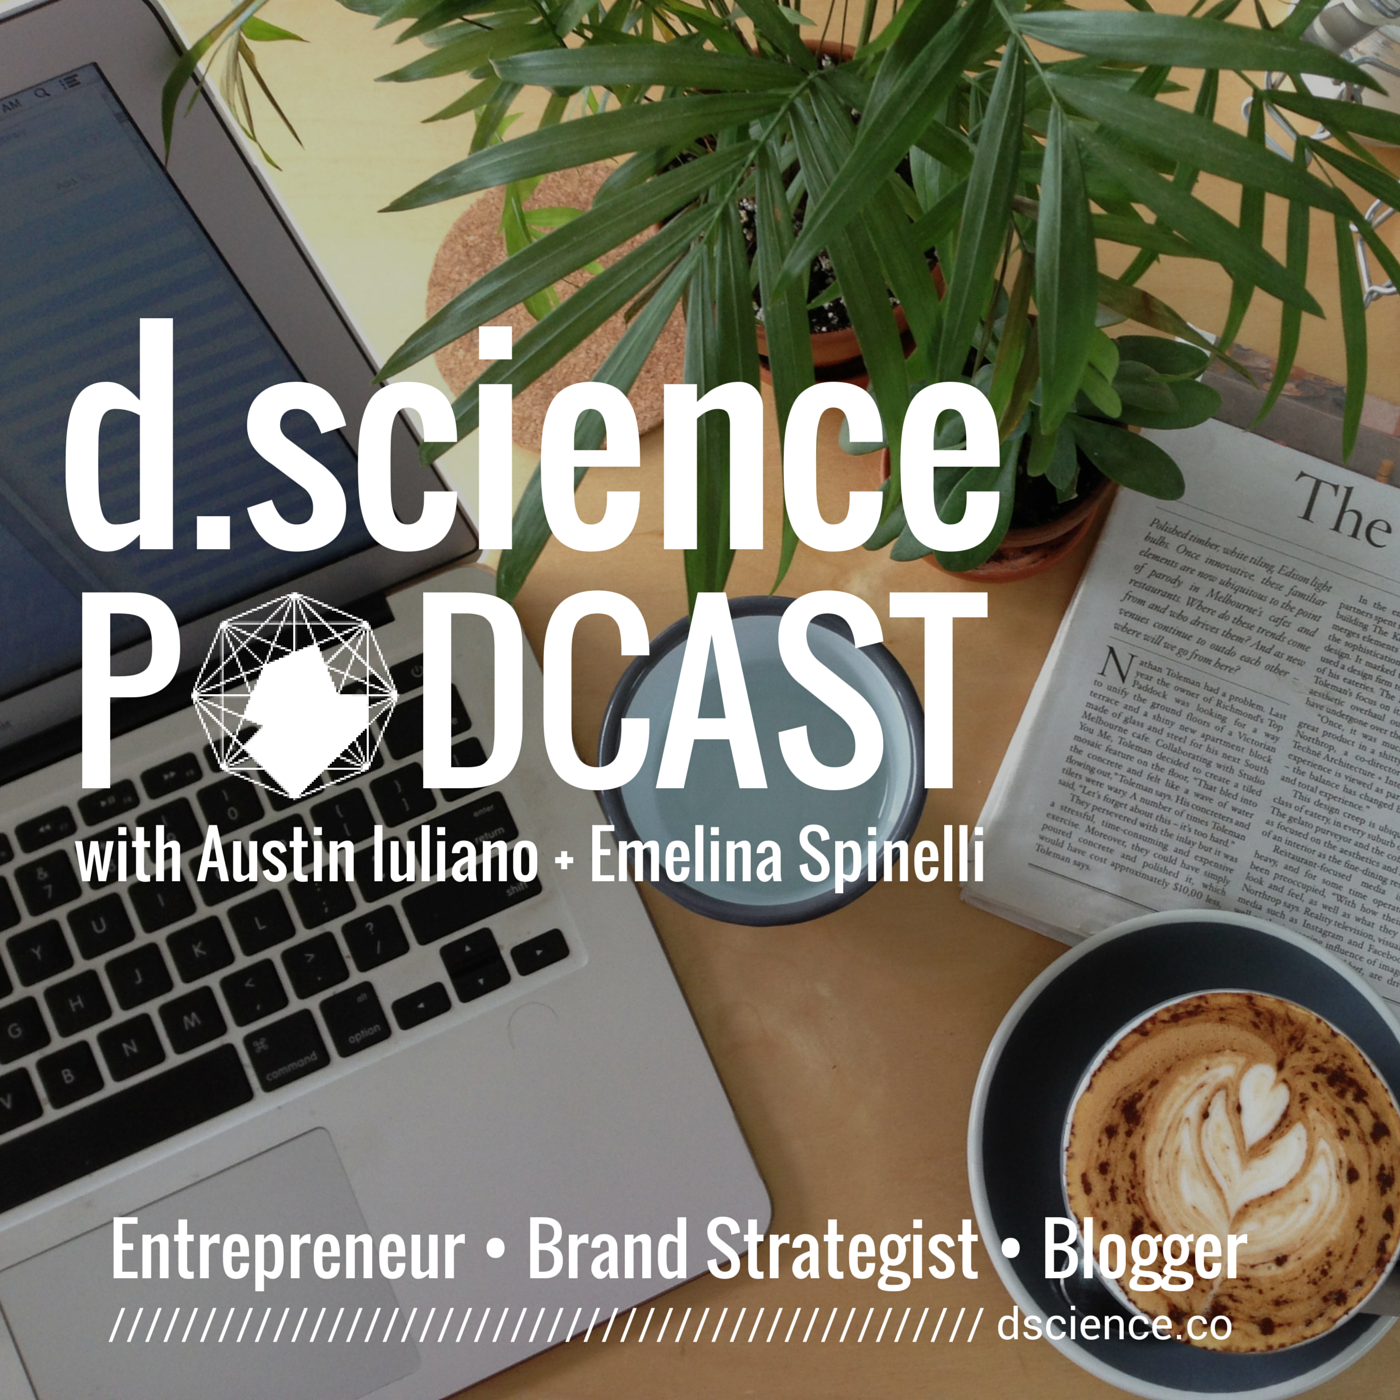 d.science Podcast: Entrepreneurship I Branding I Marketing I Social Media I Lifestyle - d.science